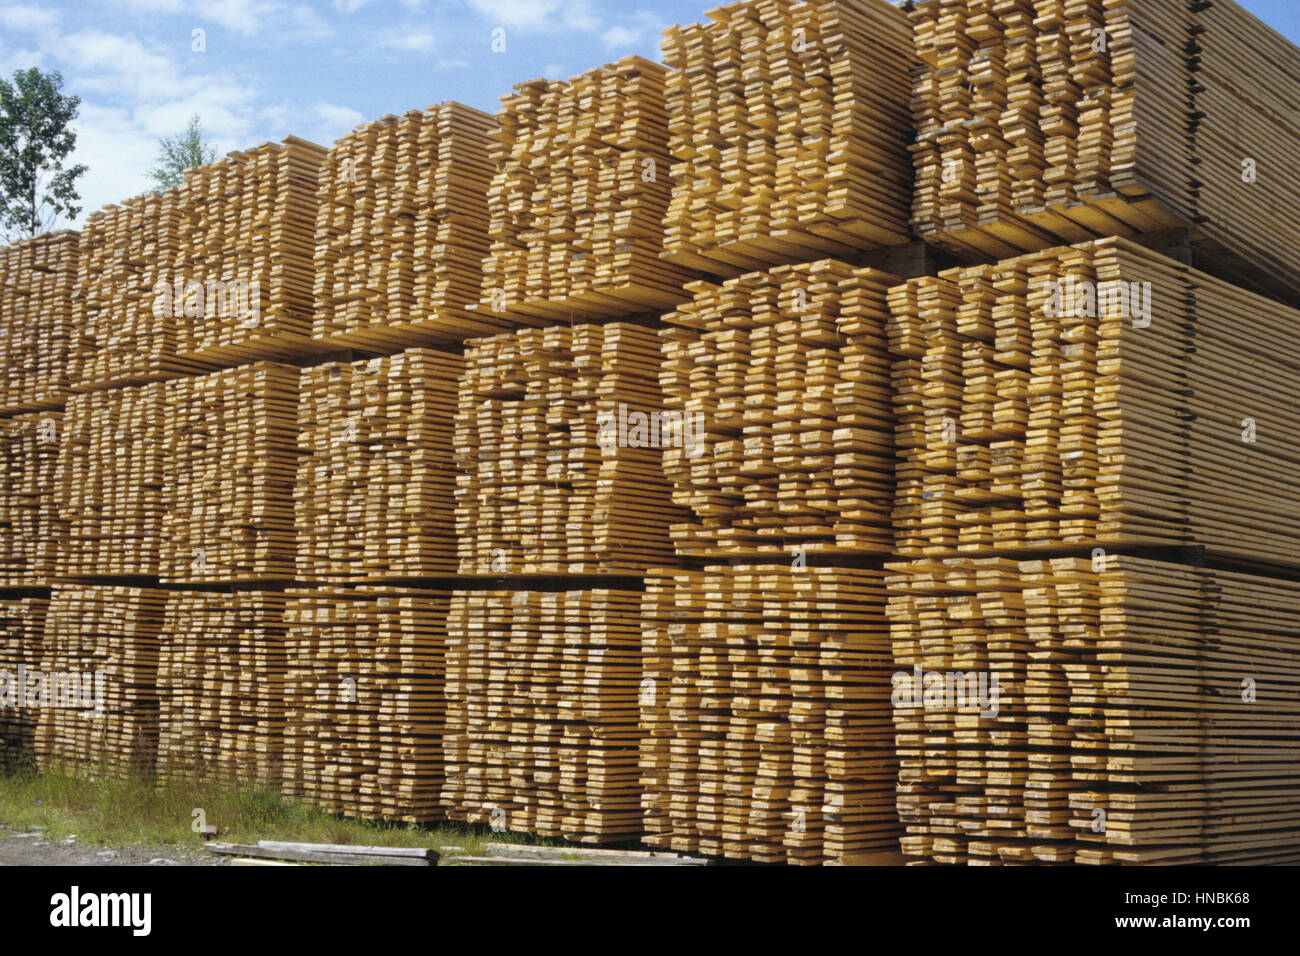 SAWED WOOD PRODUCTS stacked for drying and waiting for export - Stock Image